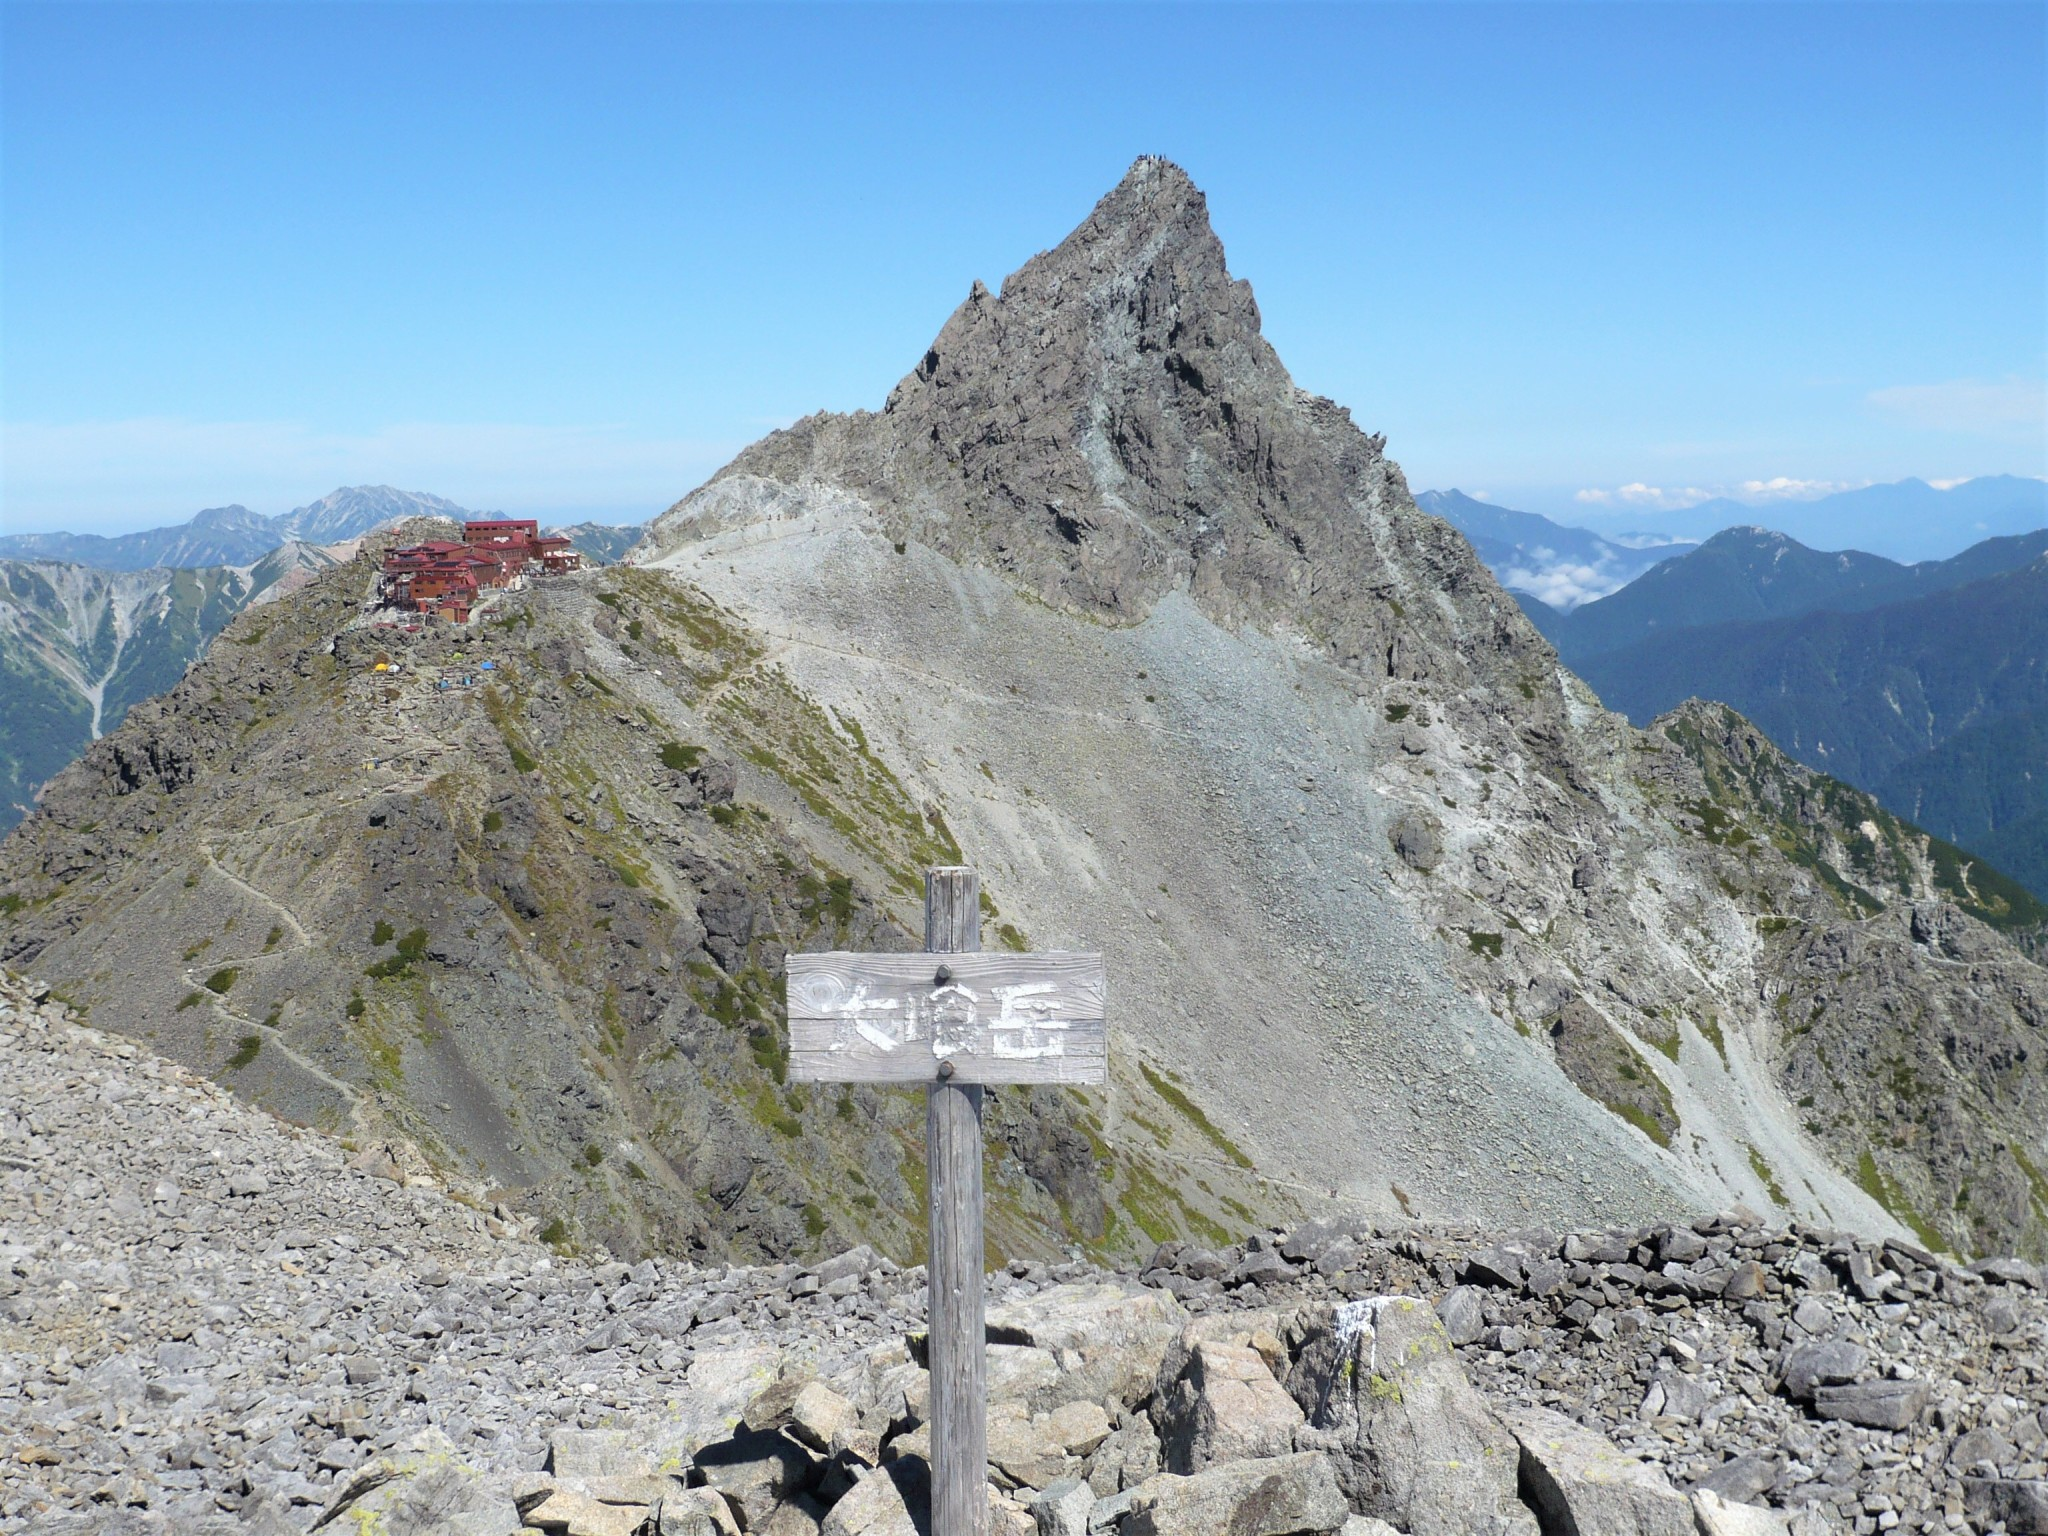 The spear-shaped summit of Mount Yari in Japan shooting upwards towards the blue sky.